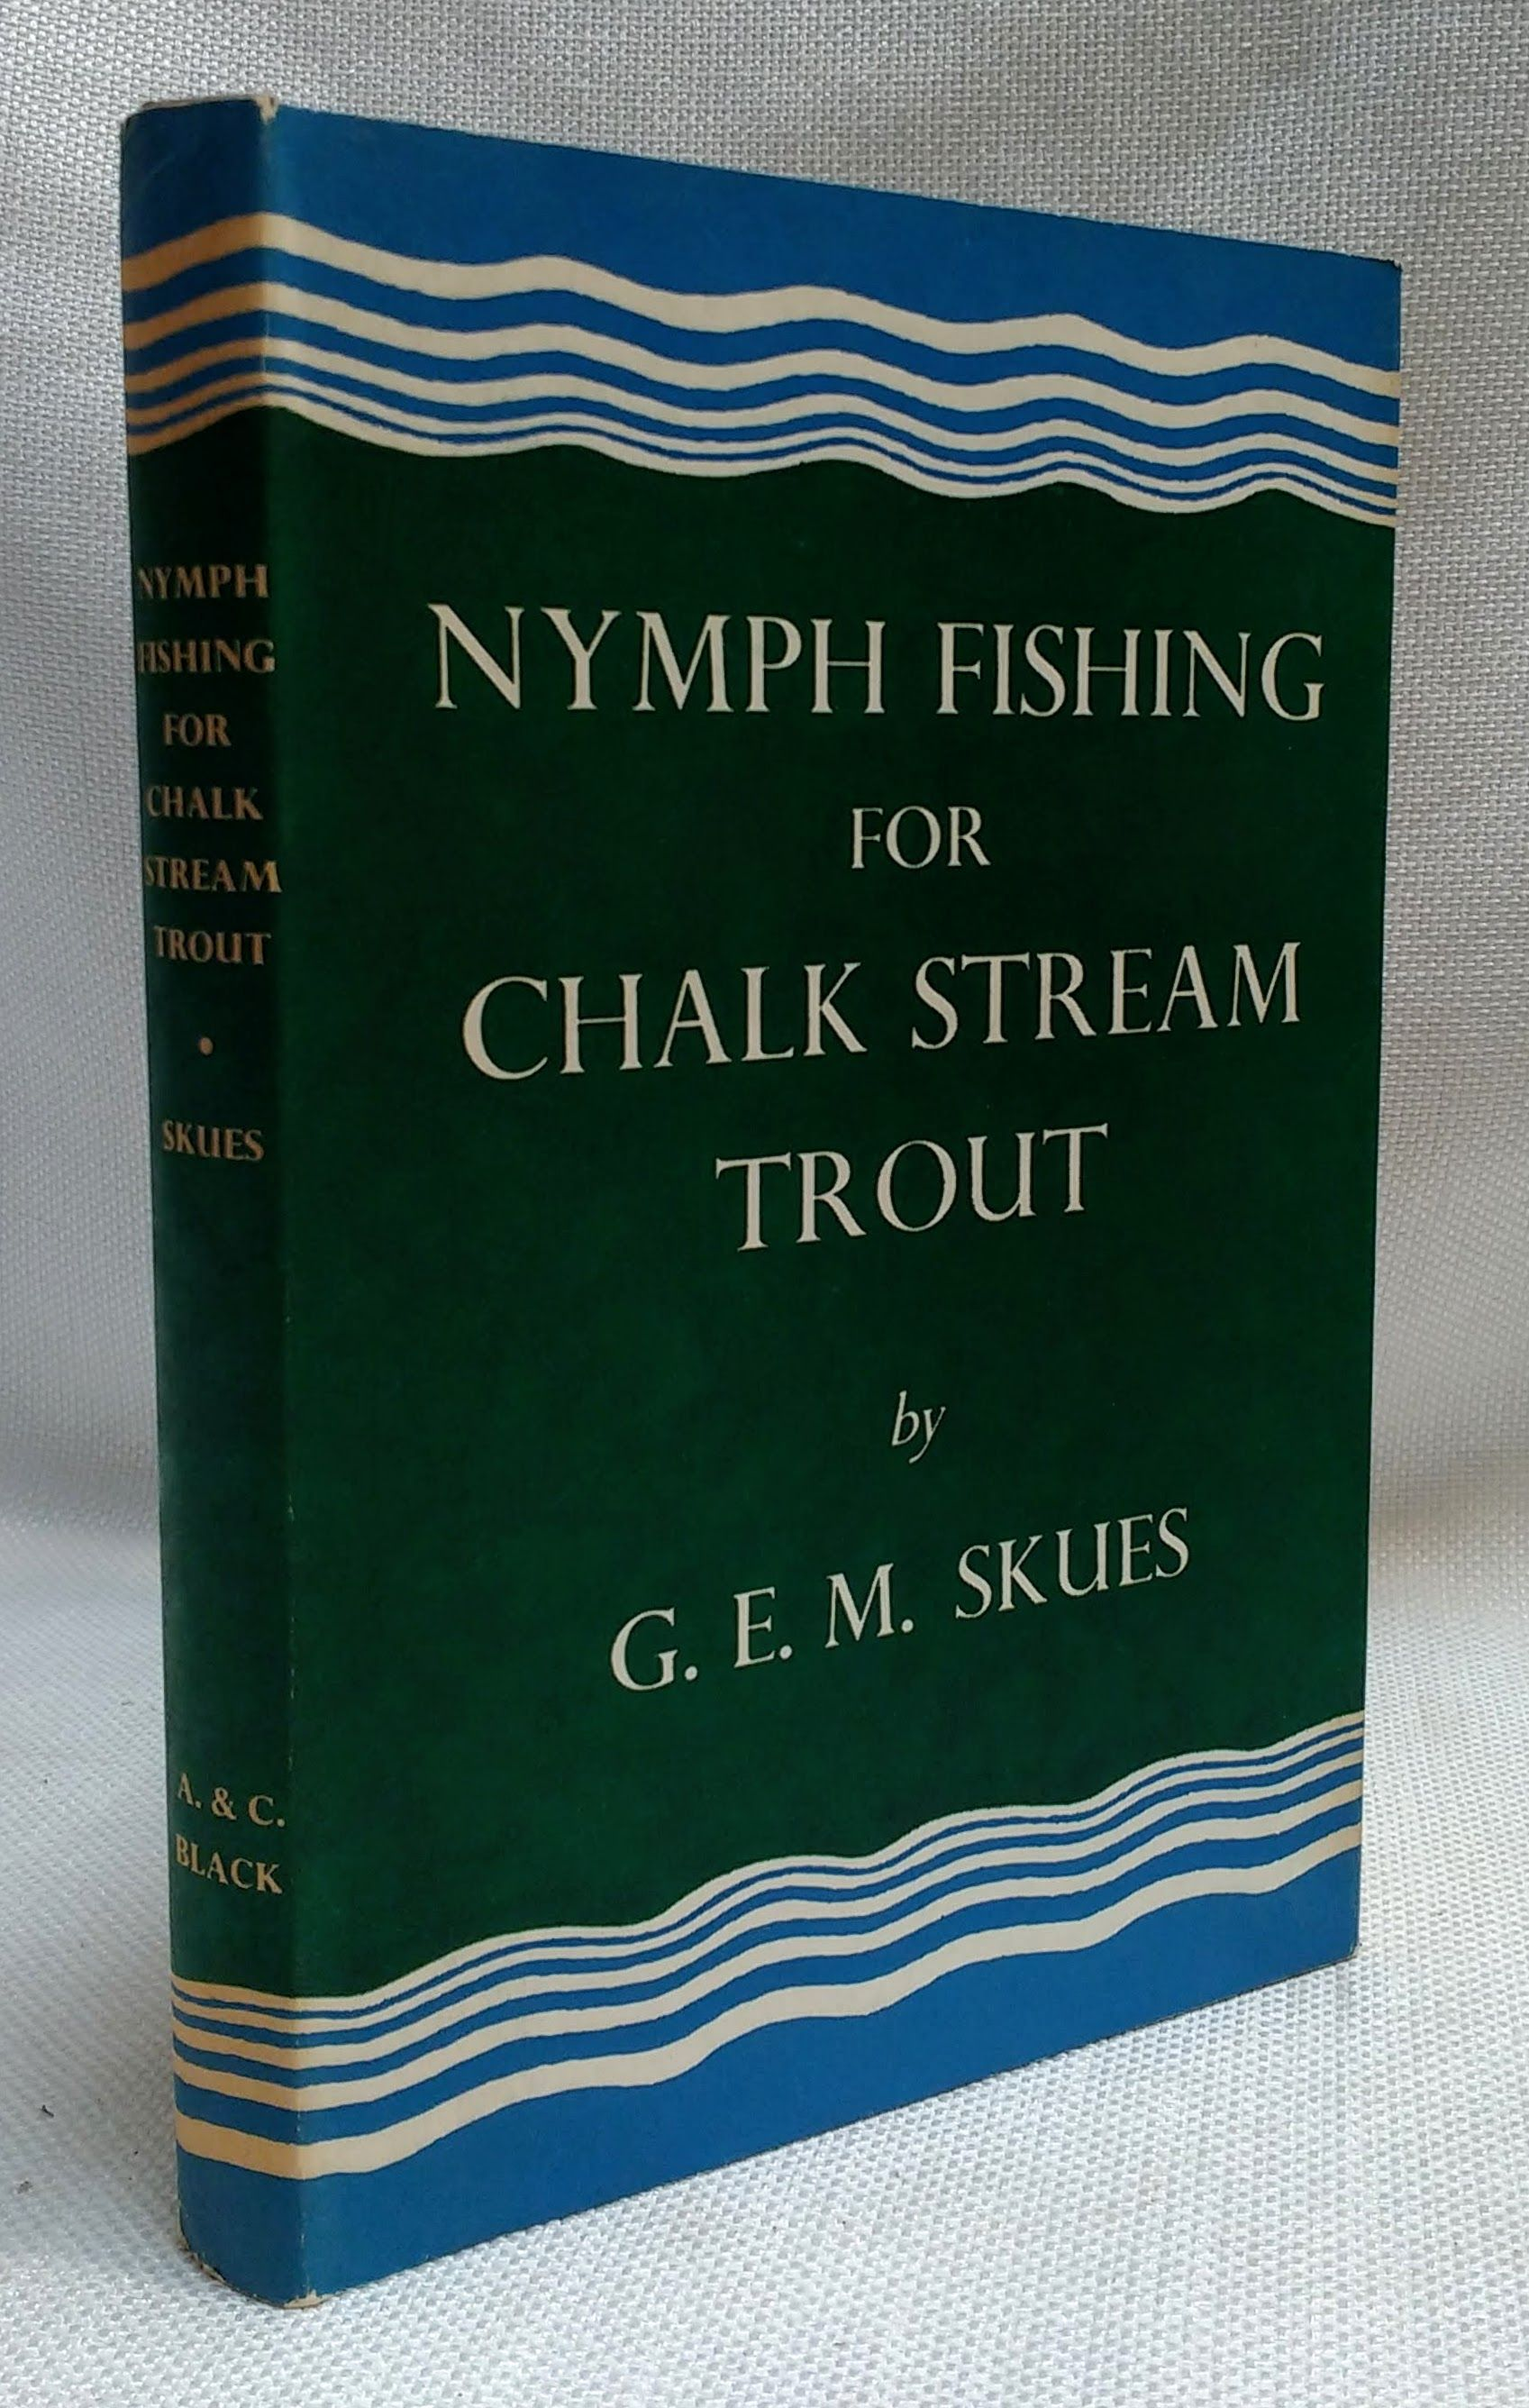 Nymph Fishing for Chalk Stream Trout, Skues, G.